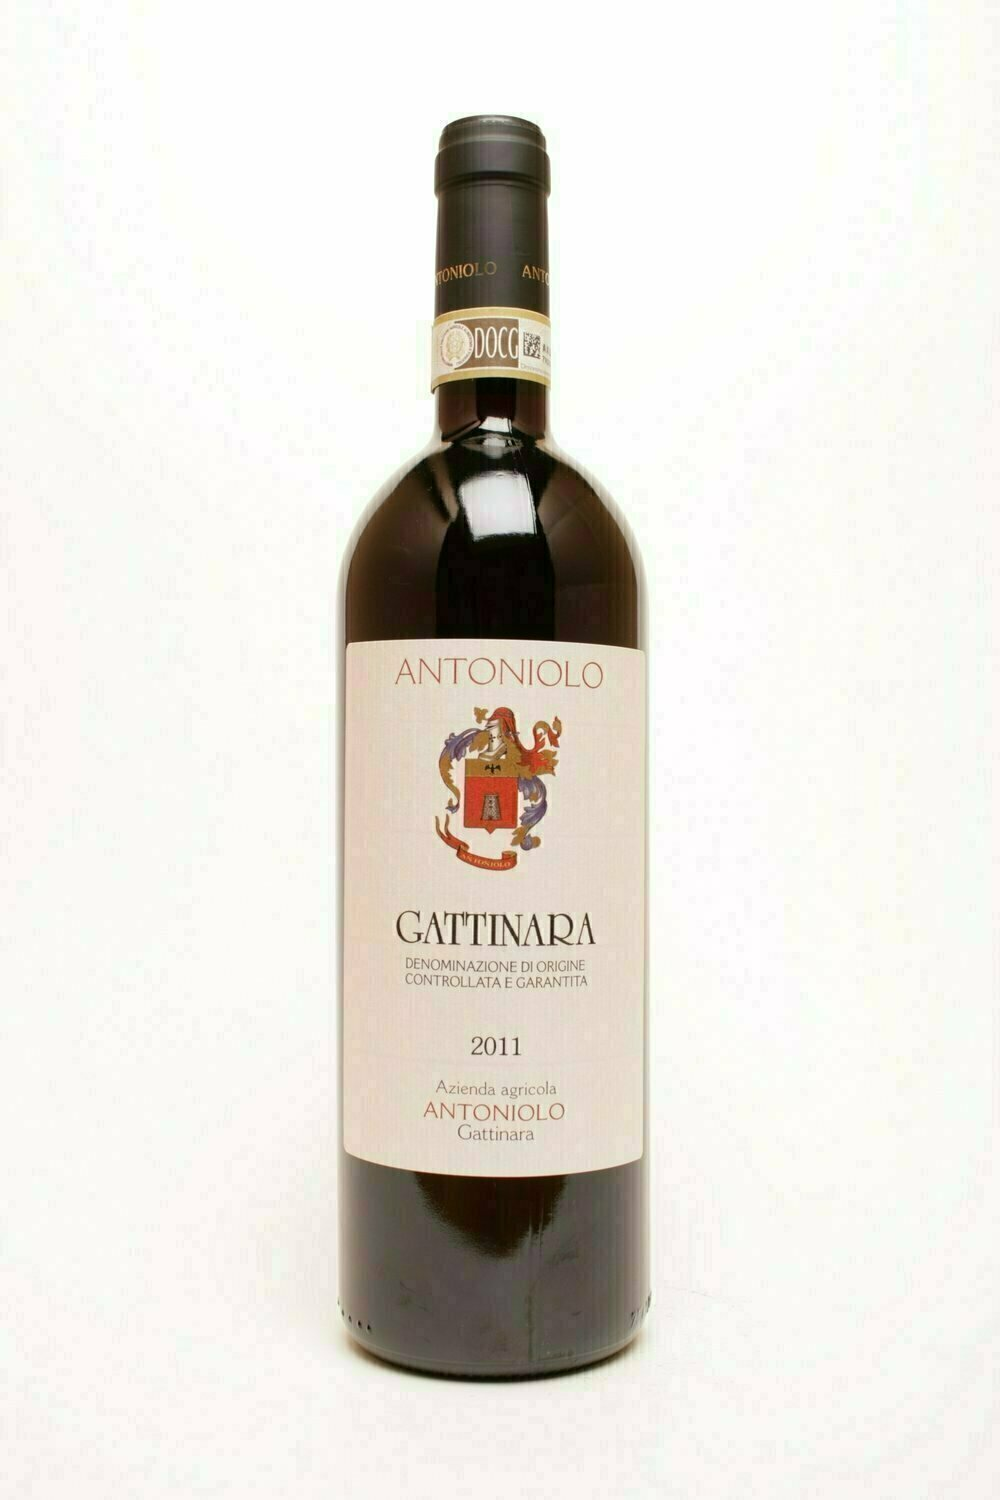 Antoniolo Gattinara 2011